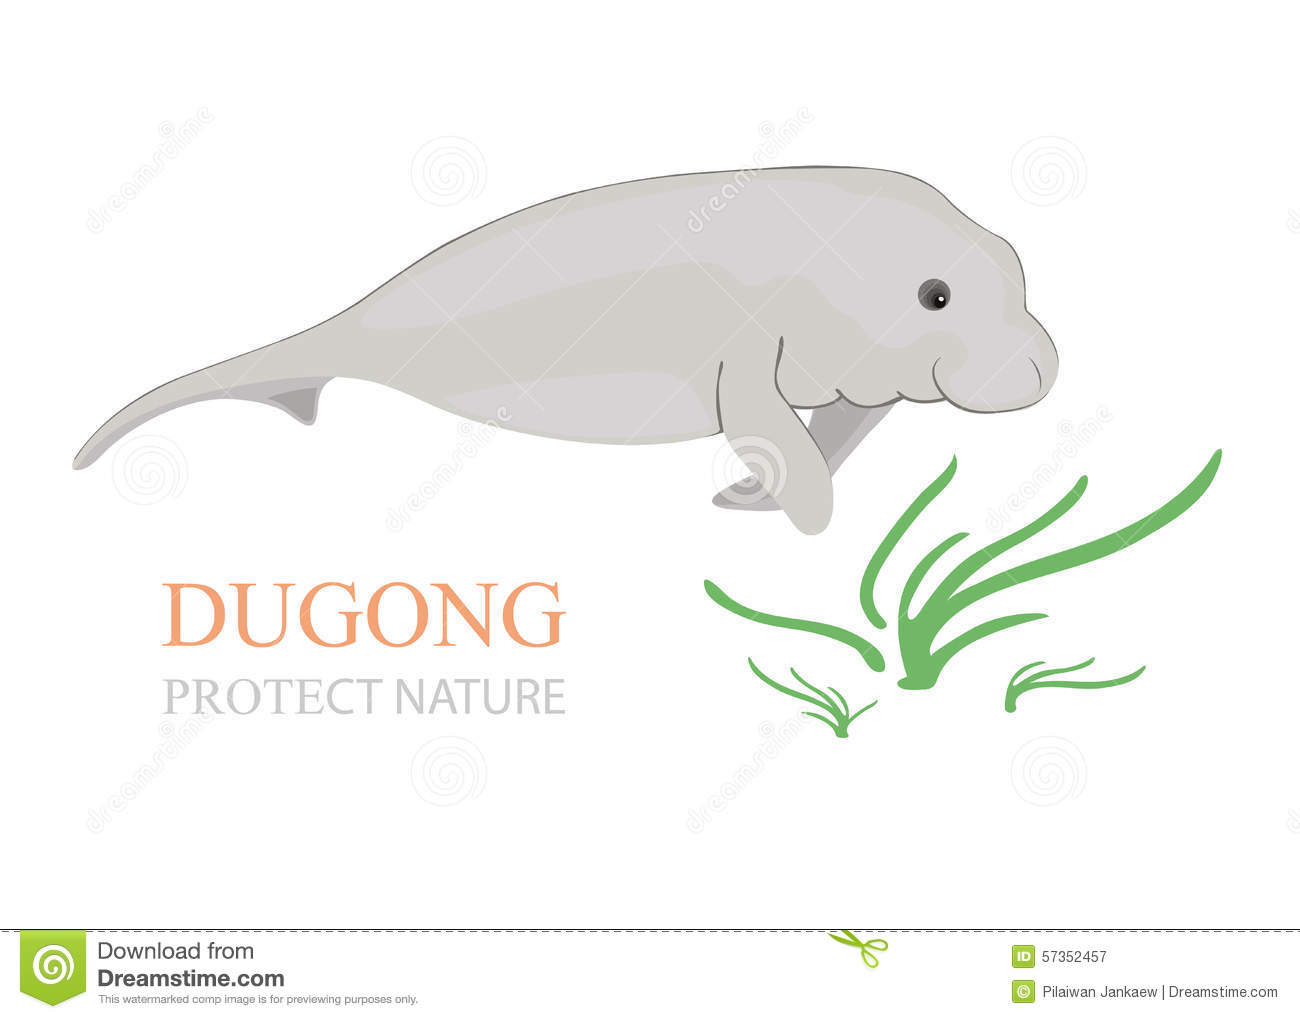 Dugong clipart #15, Download drawings